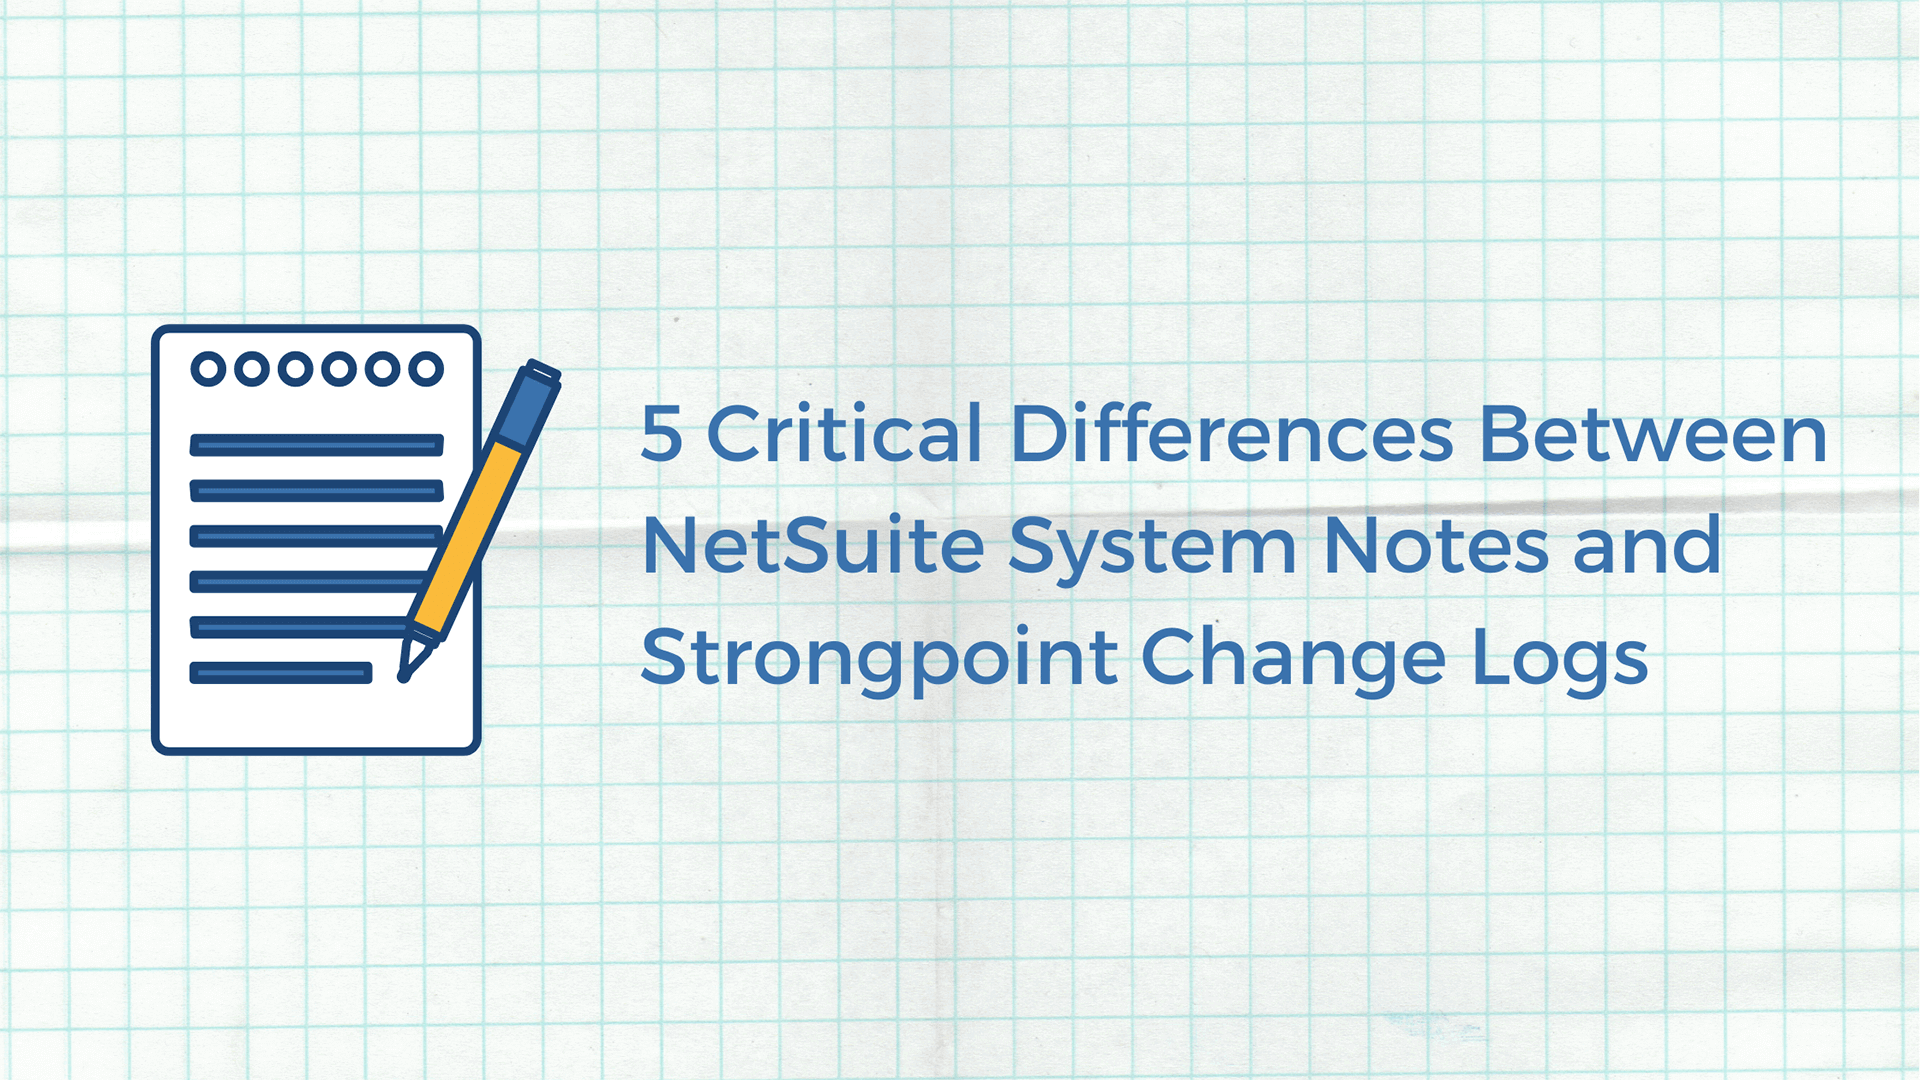 5 Critical Differences Between NetSuite System Notes and Strongpoint Change Logs